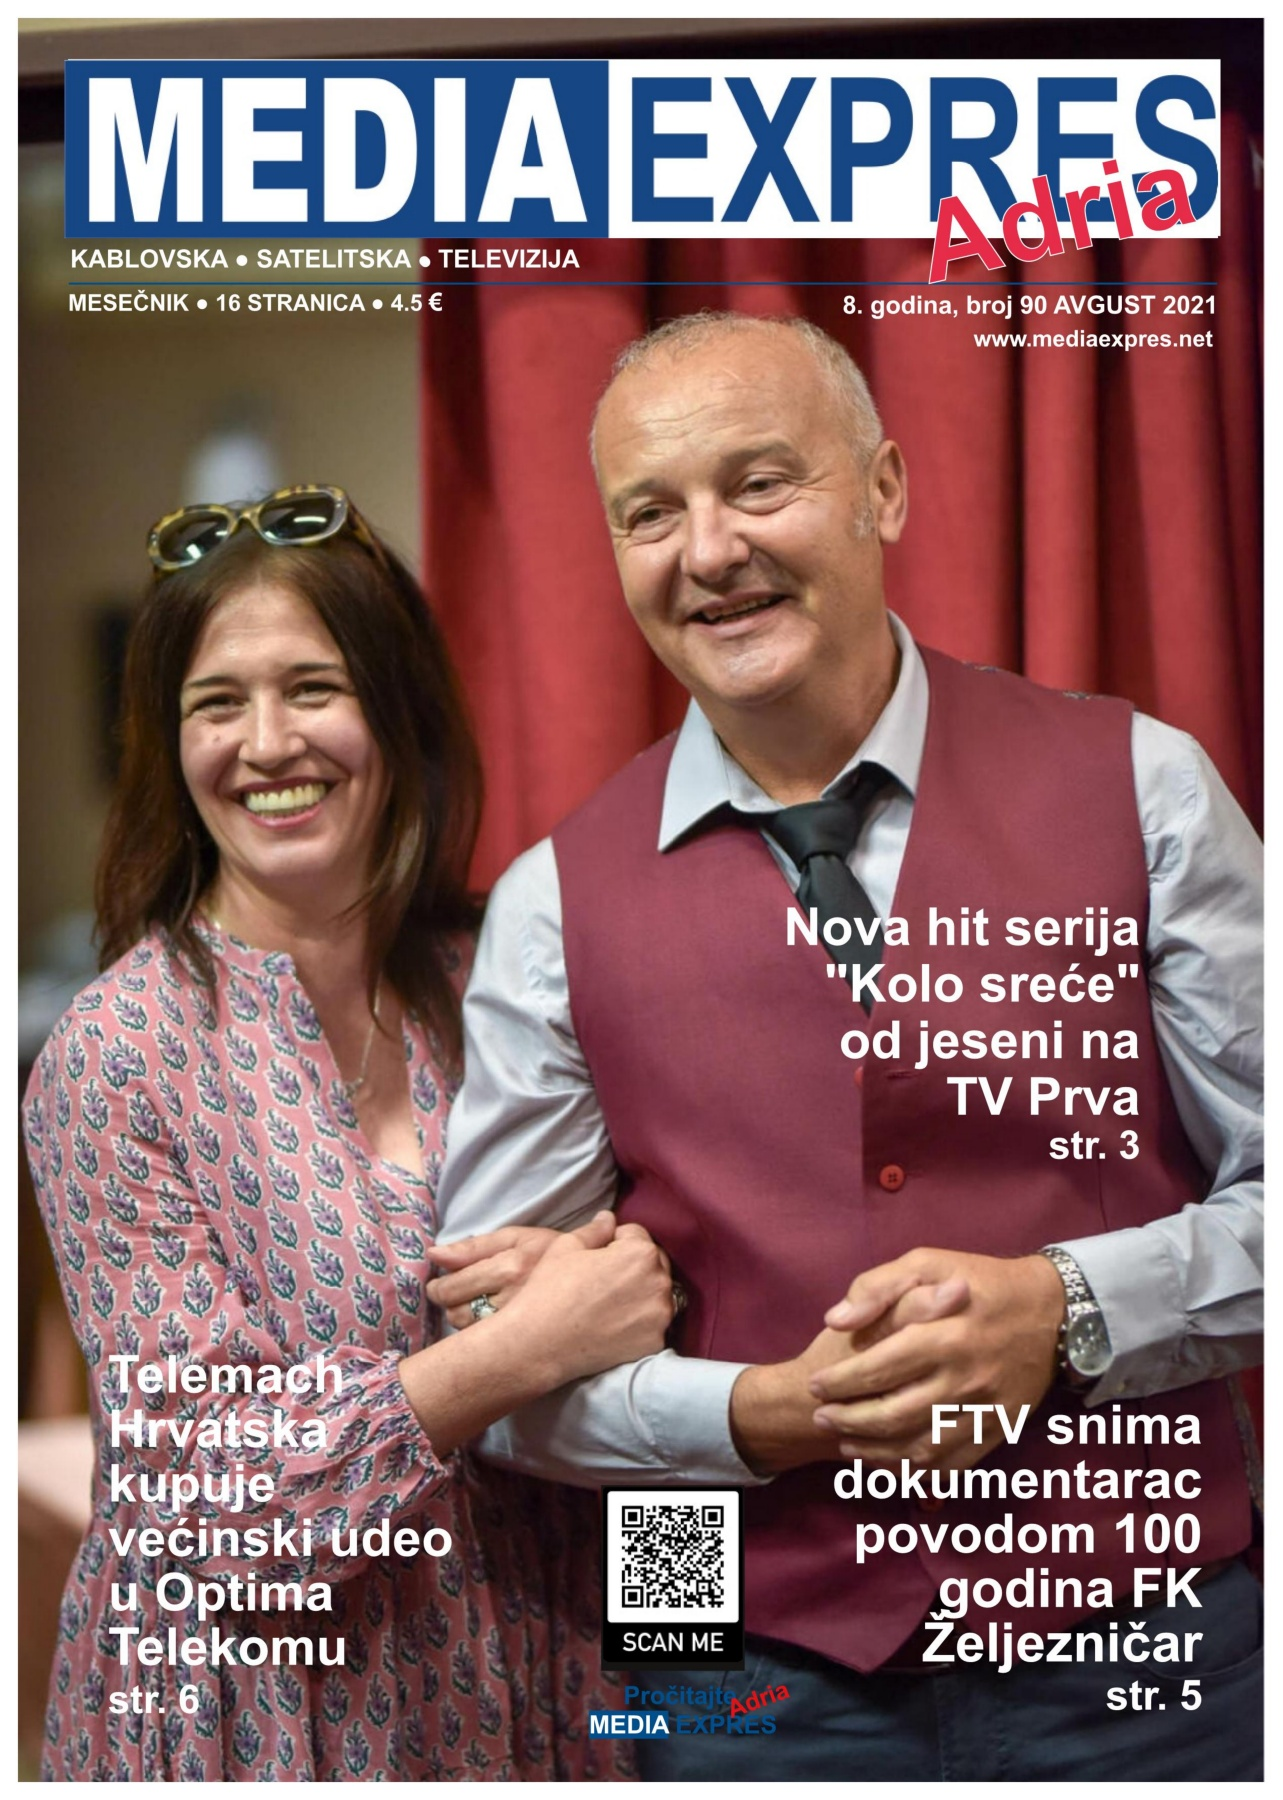 Media Expres Adria No 8 AVGUST 2021 1st Cover